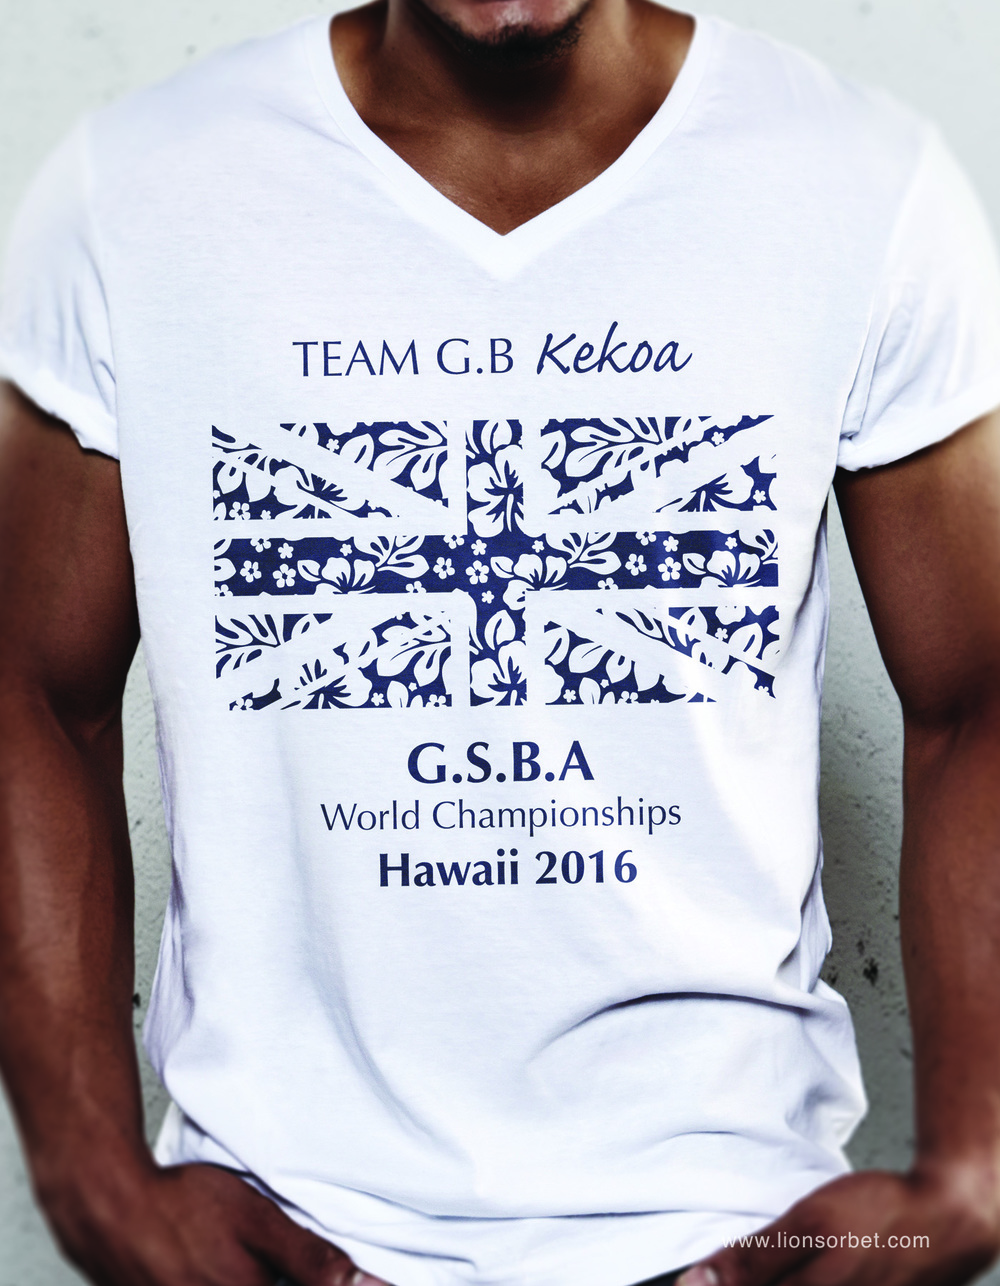 Squad Tee Design for the GSBA World Championships held in Hawaii 2016